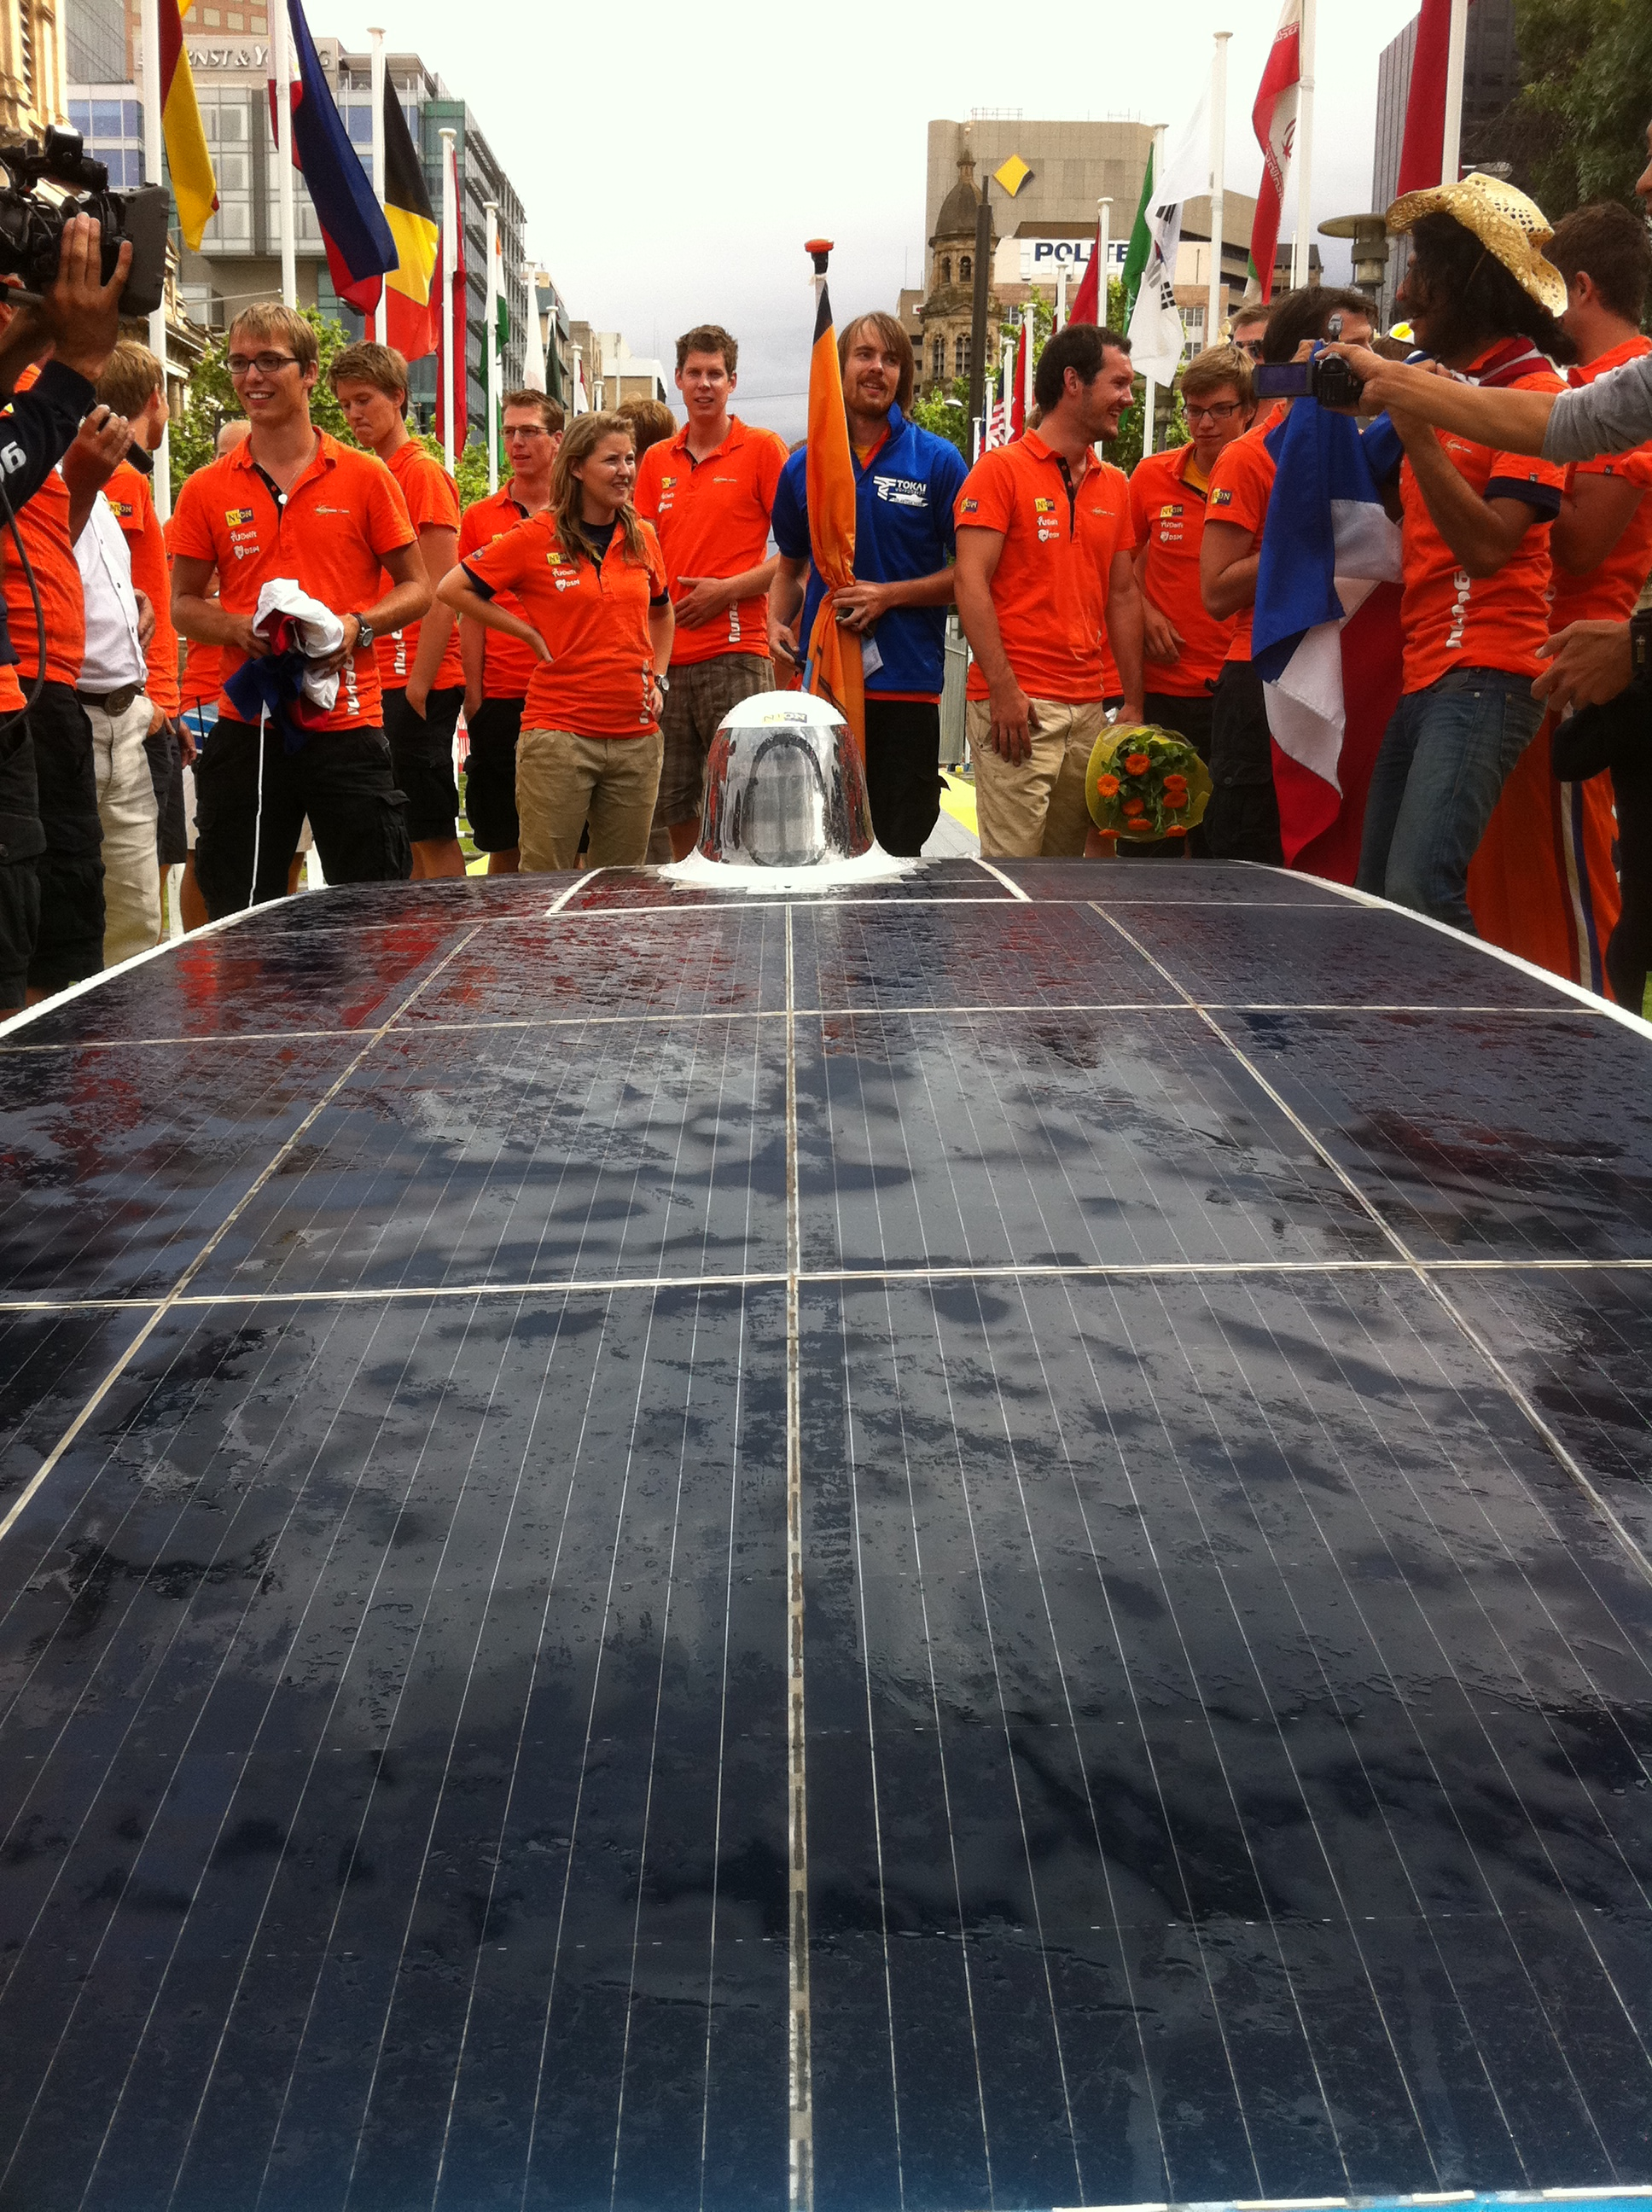 Nuon Solar Team's Nuna 6 (Netherlands), 2nd Winning Team that arrived at Adelaide, Australia